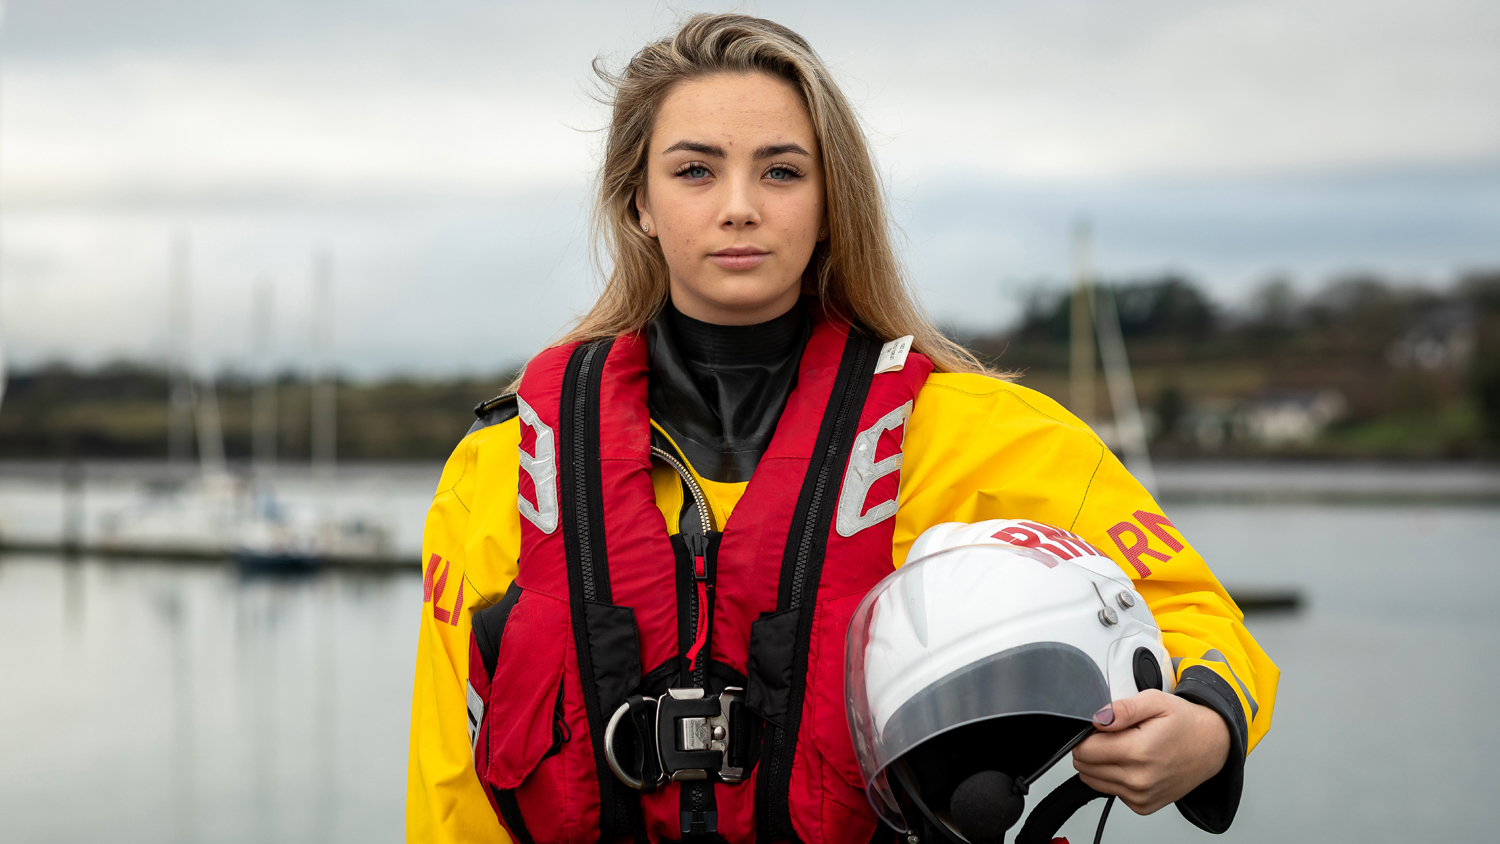 Georgia Keating, Crew Member at Blackpool Lifeboat Station